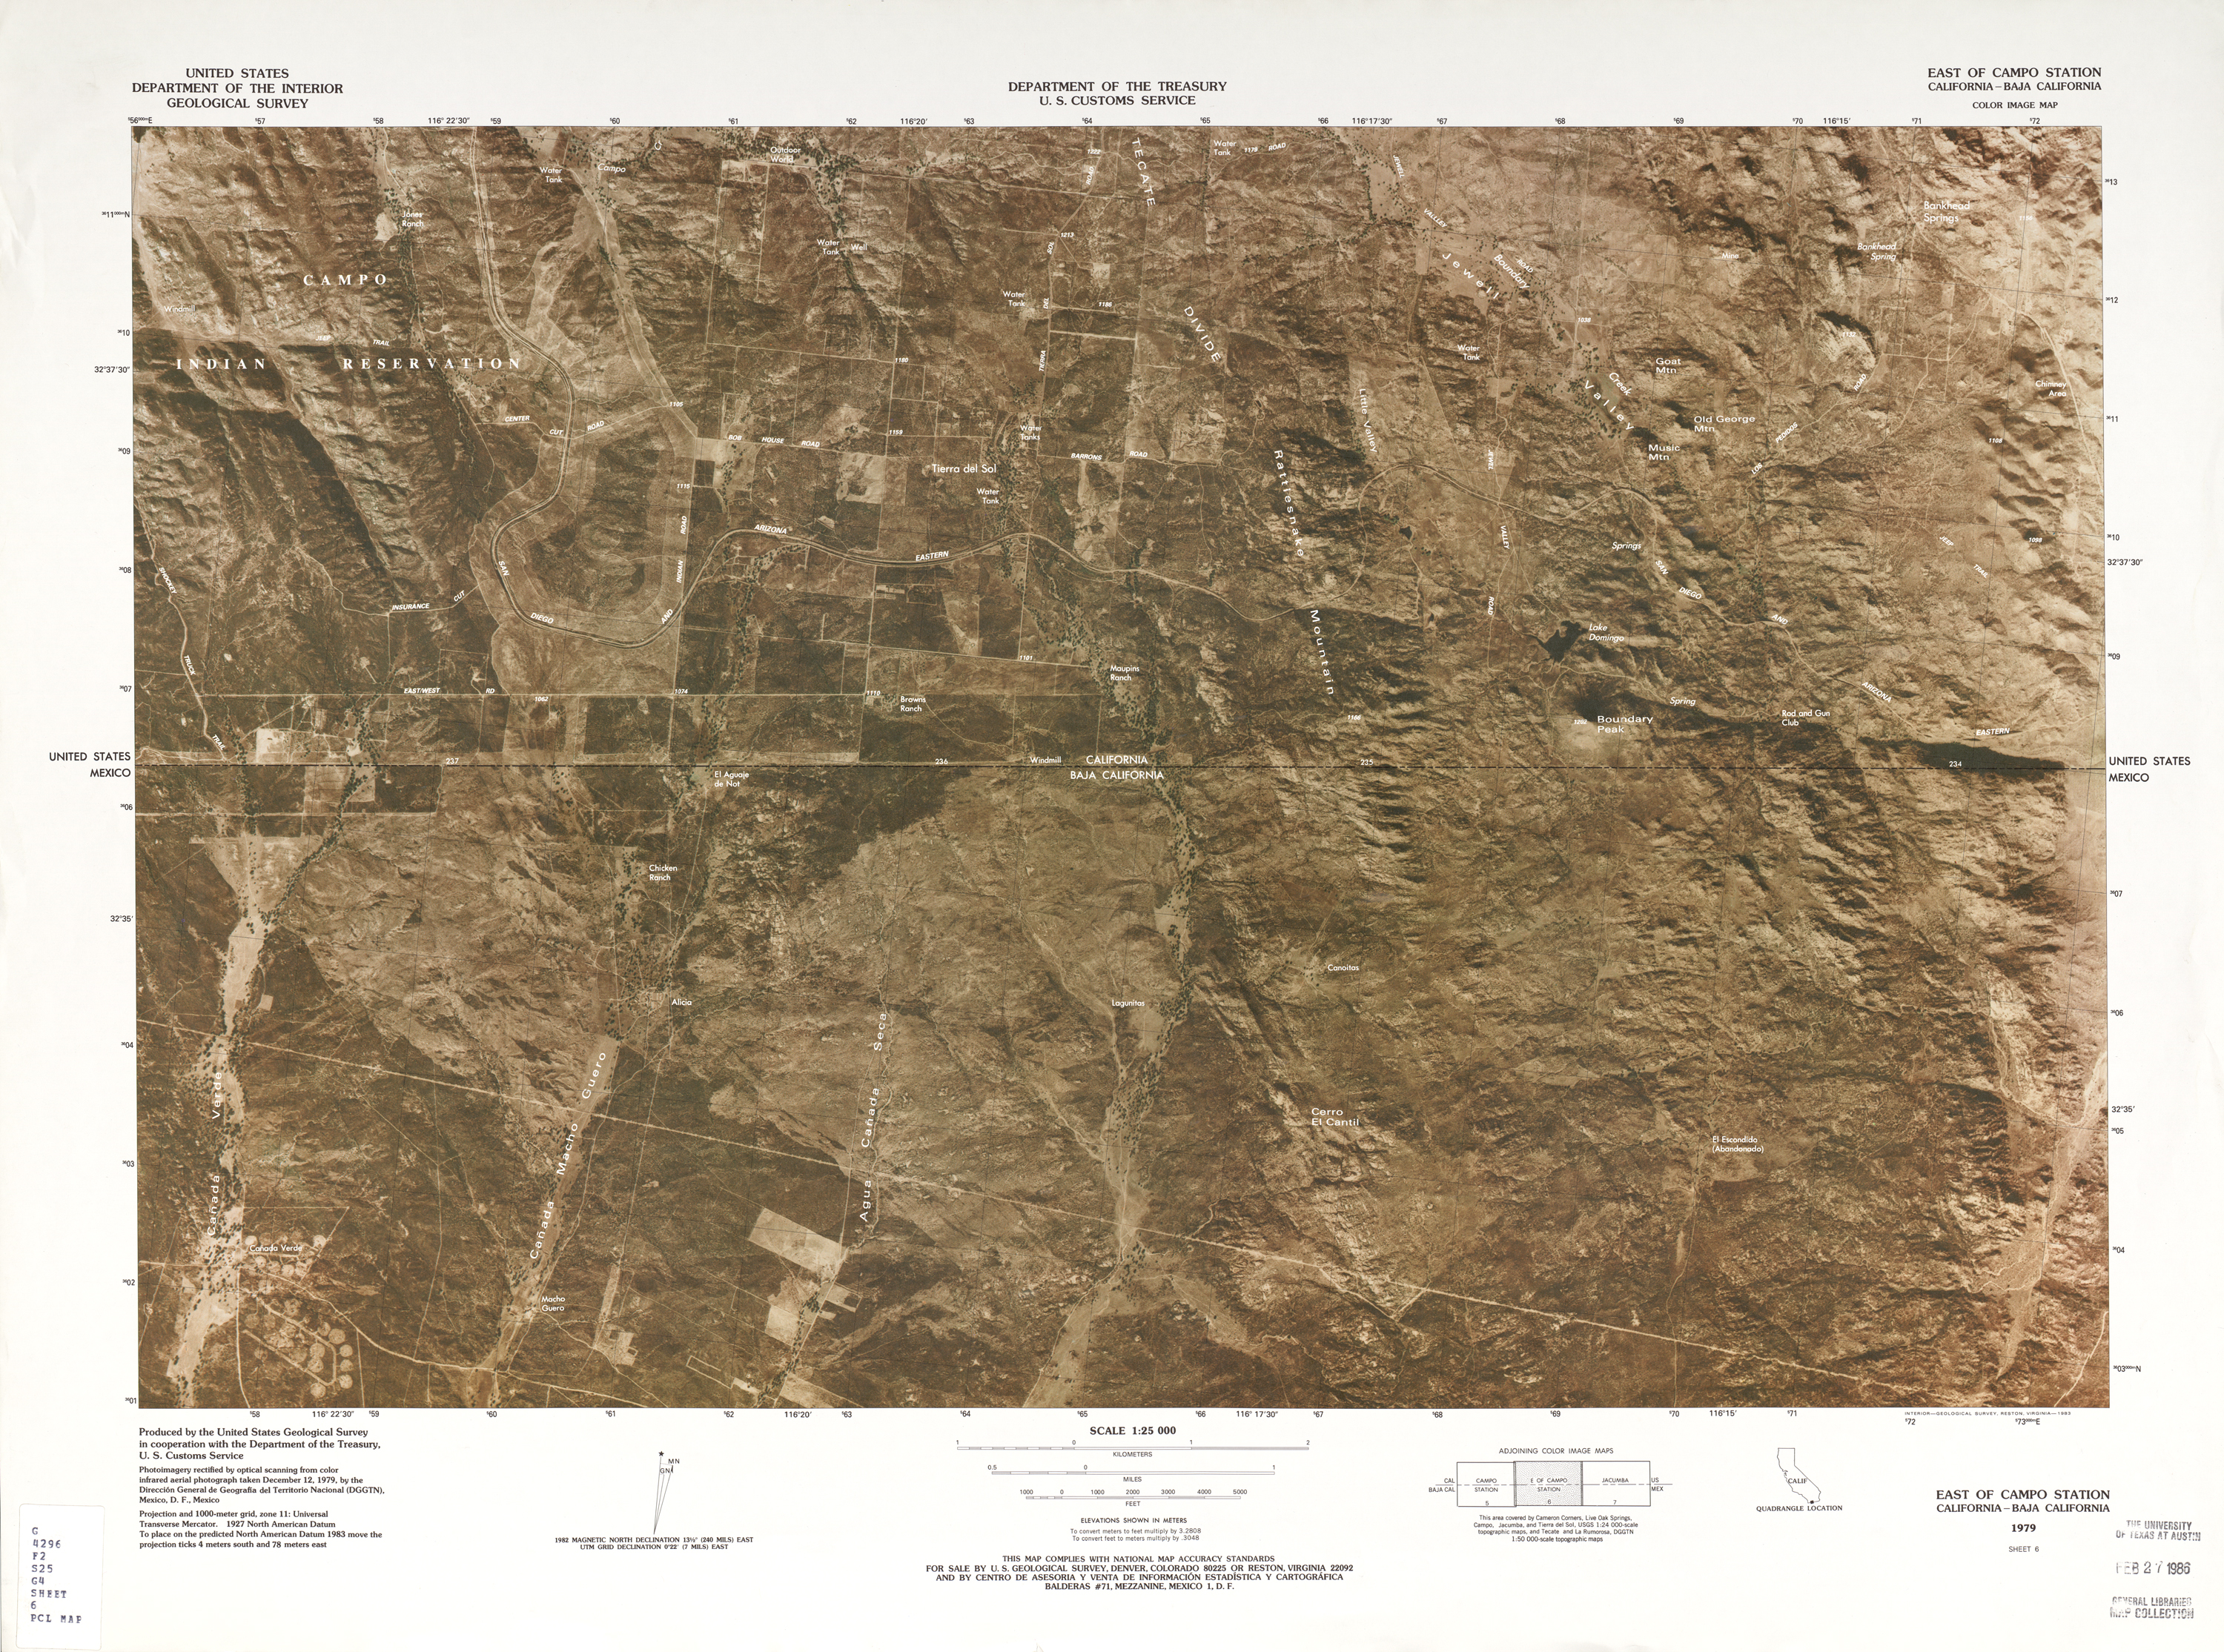 Mexico United States Border PerryCastañeda Map Collection UT - Map of the border of mexico us